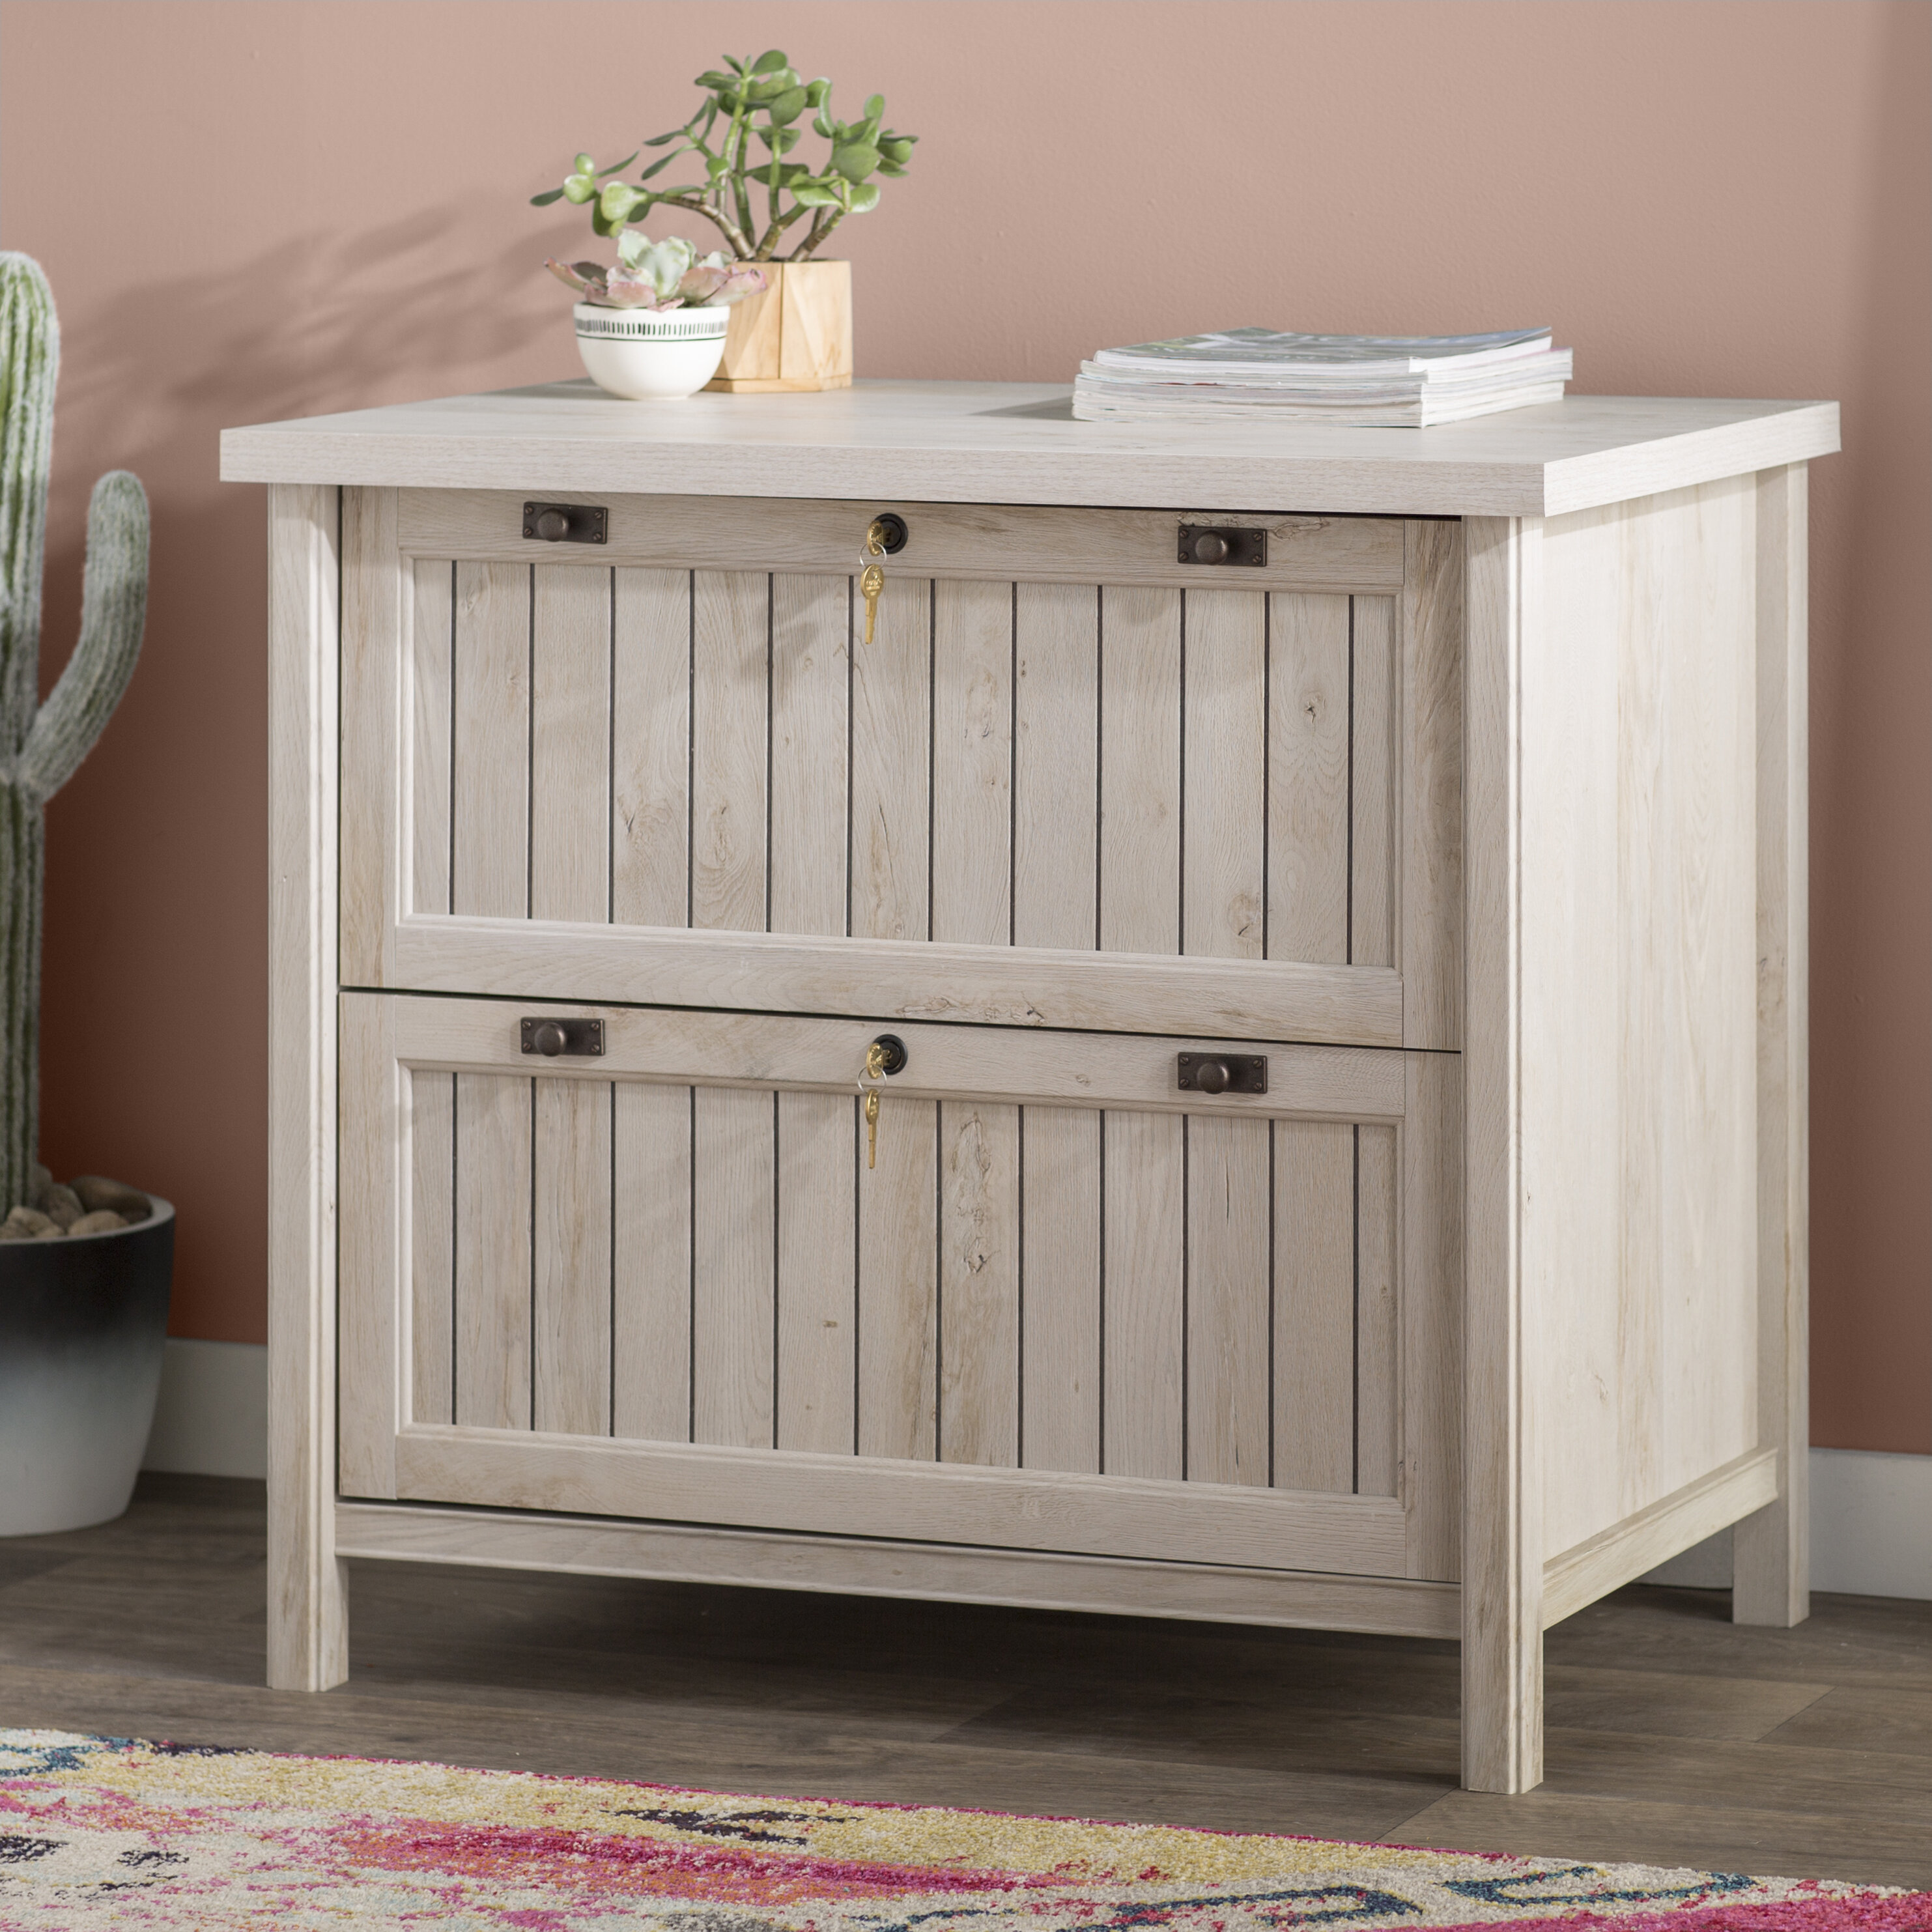 Laurel Foundry Modern Farmhouse Shelby 2 Drawer Lateral Filing Cabinet Reviews Wayfair